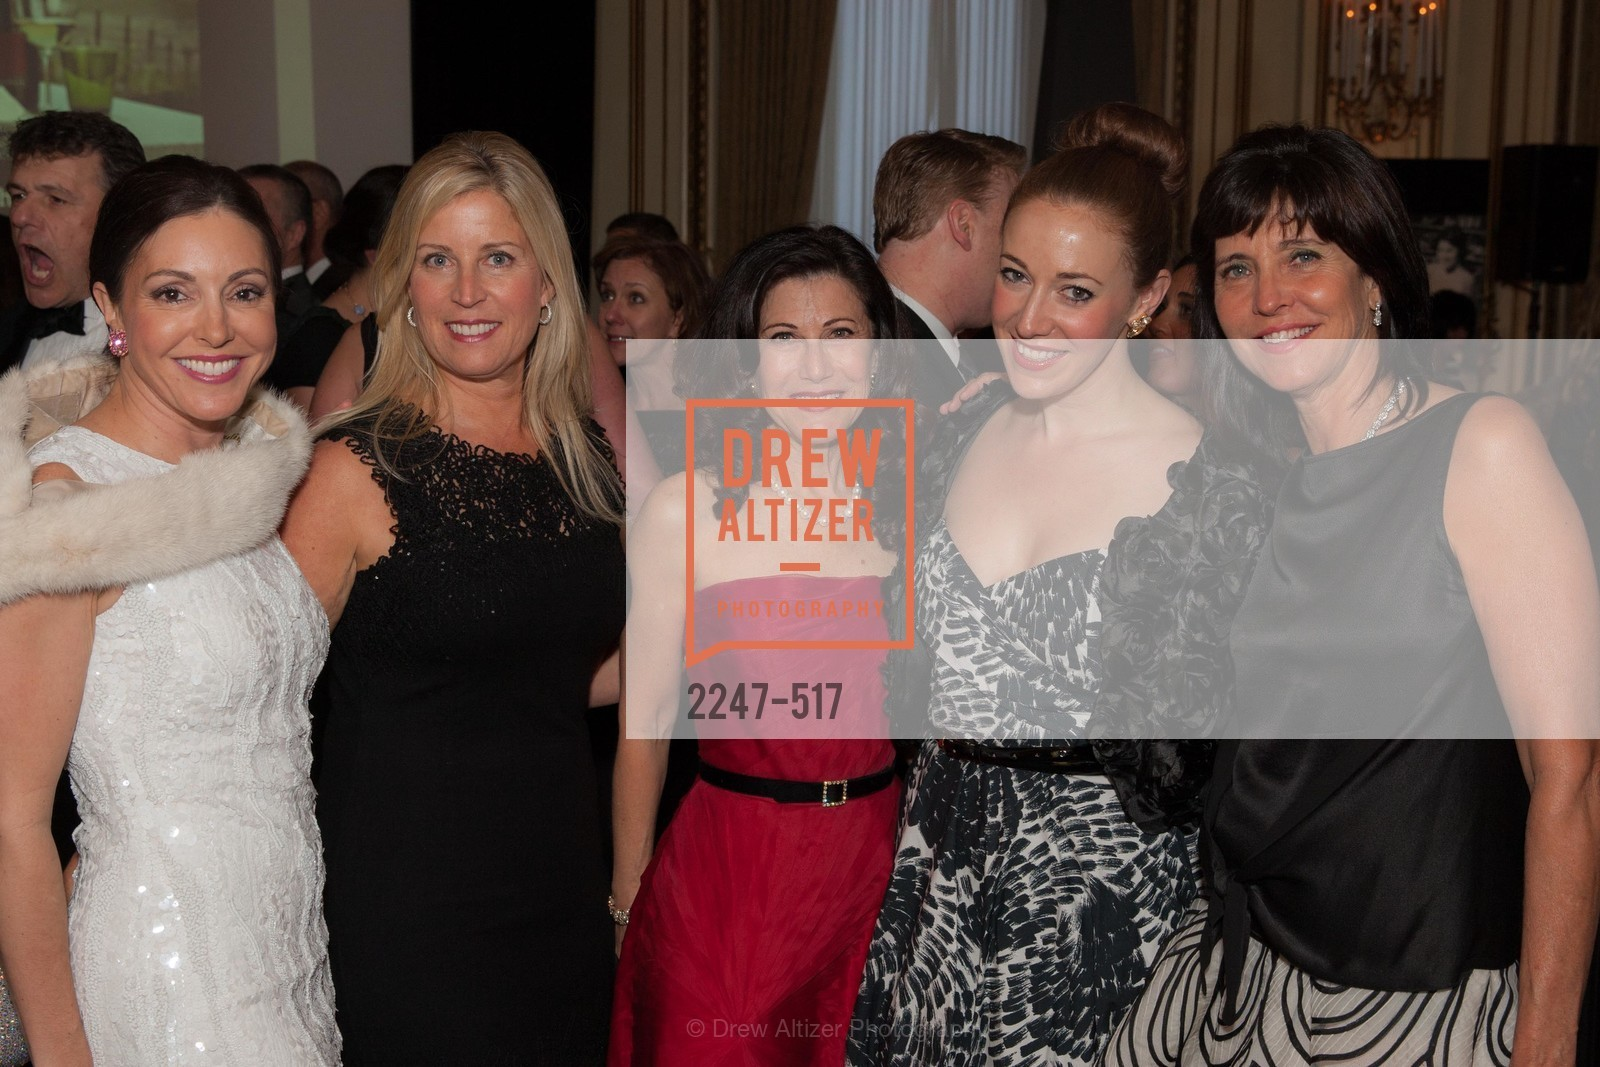 Marybeth Lamotte, Jane Inch, Adrienne Mally, Schuyler Hudak, Anne Marie Massocca, SAN FRANCISCO OPERA GUILD Presents POPera, US. US, April 10th, 2014,Drew Altizer, Drew Altizer Photography, full-service agency, private events, San Francisco photographer, photographer california